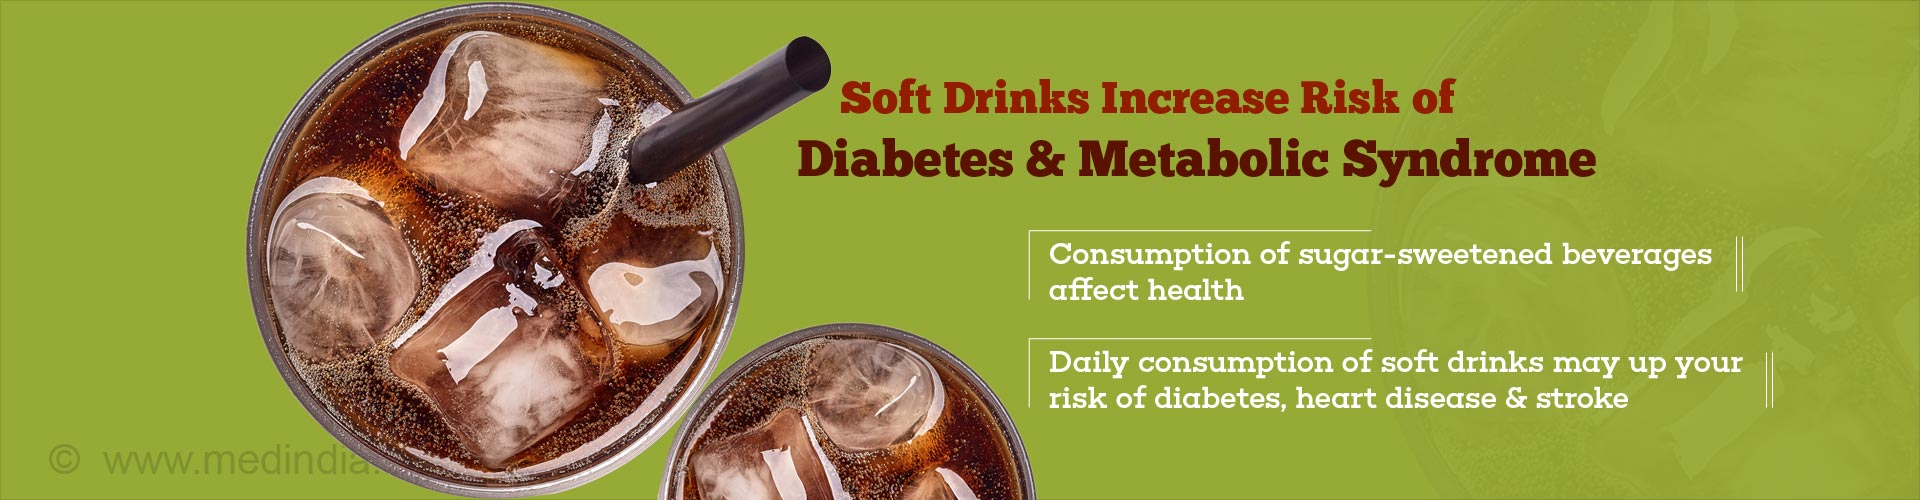 Soft drinks increase risk of diabetes & metabolic syndrome